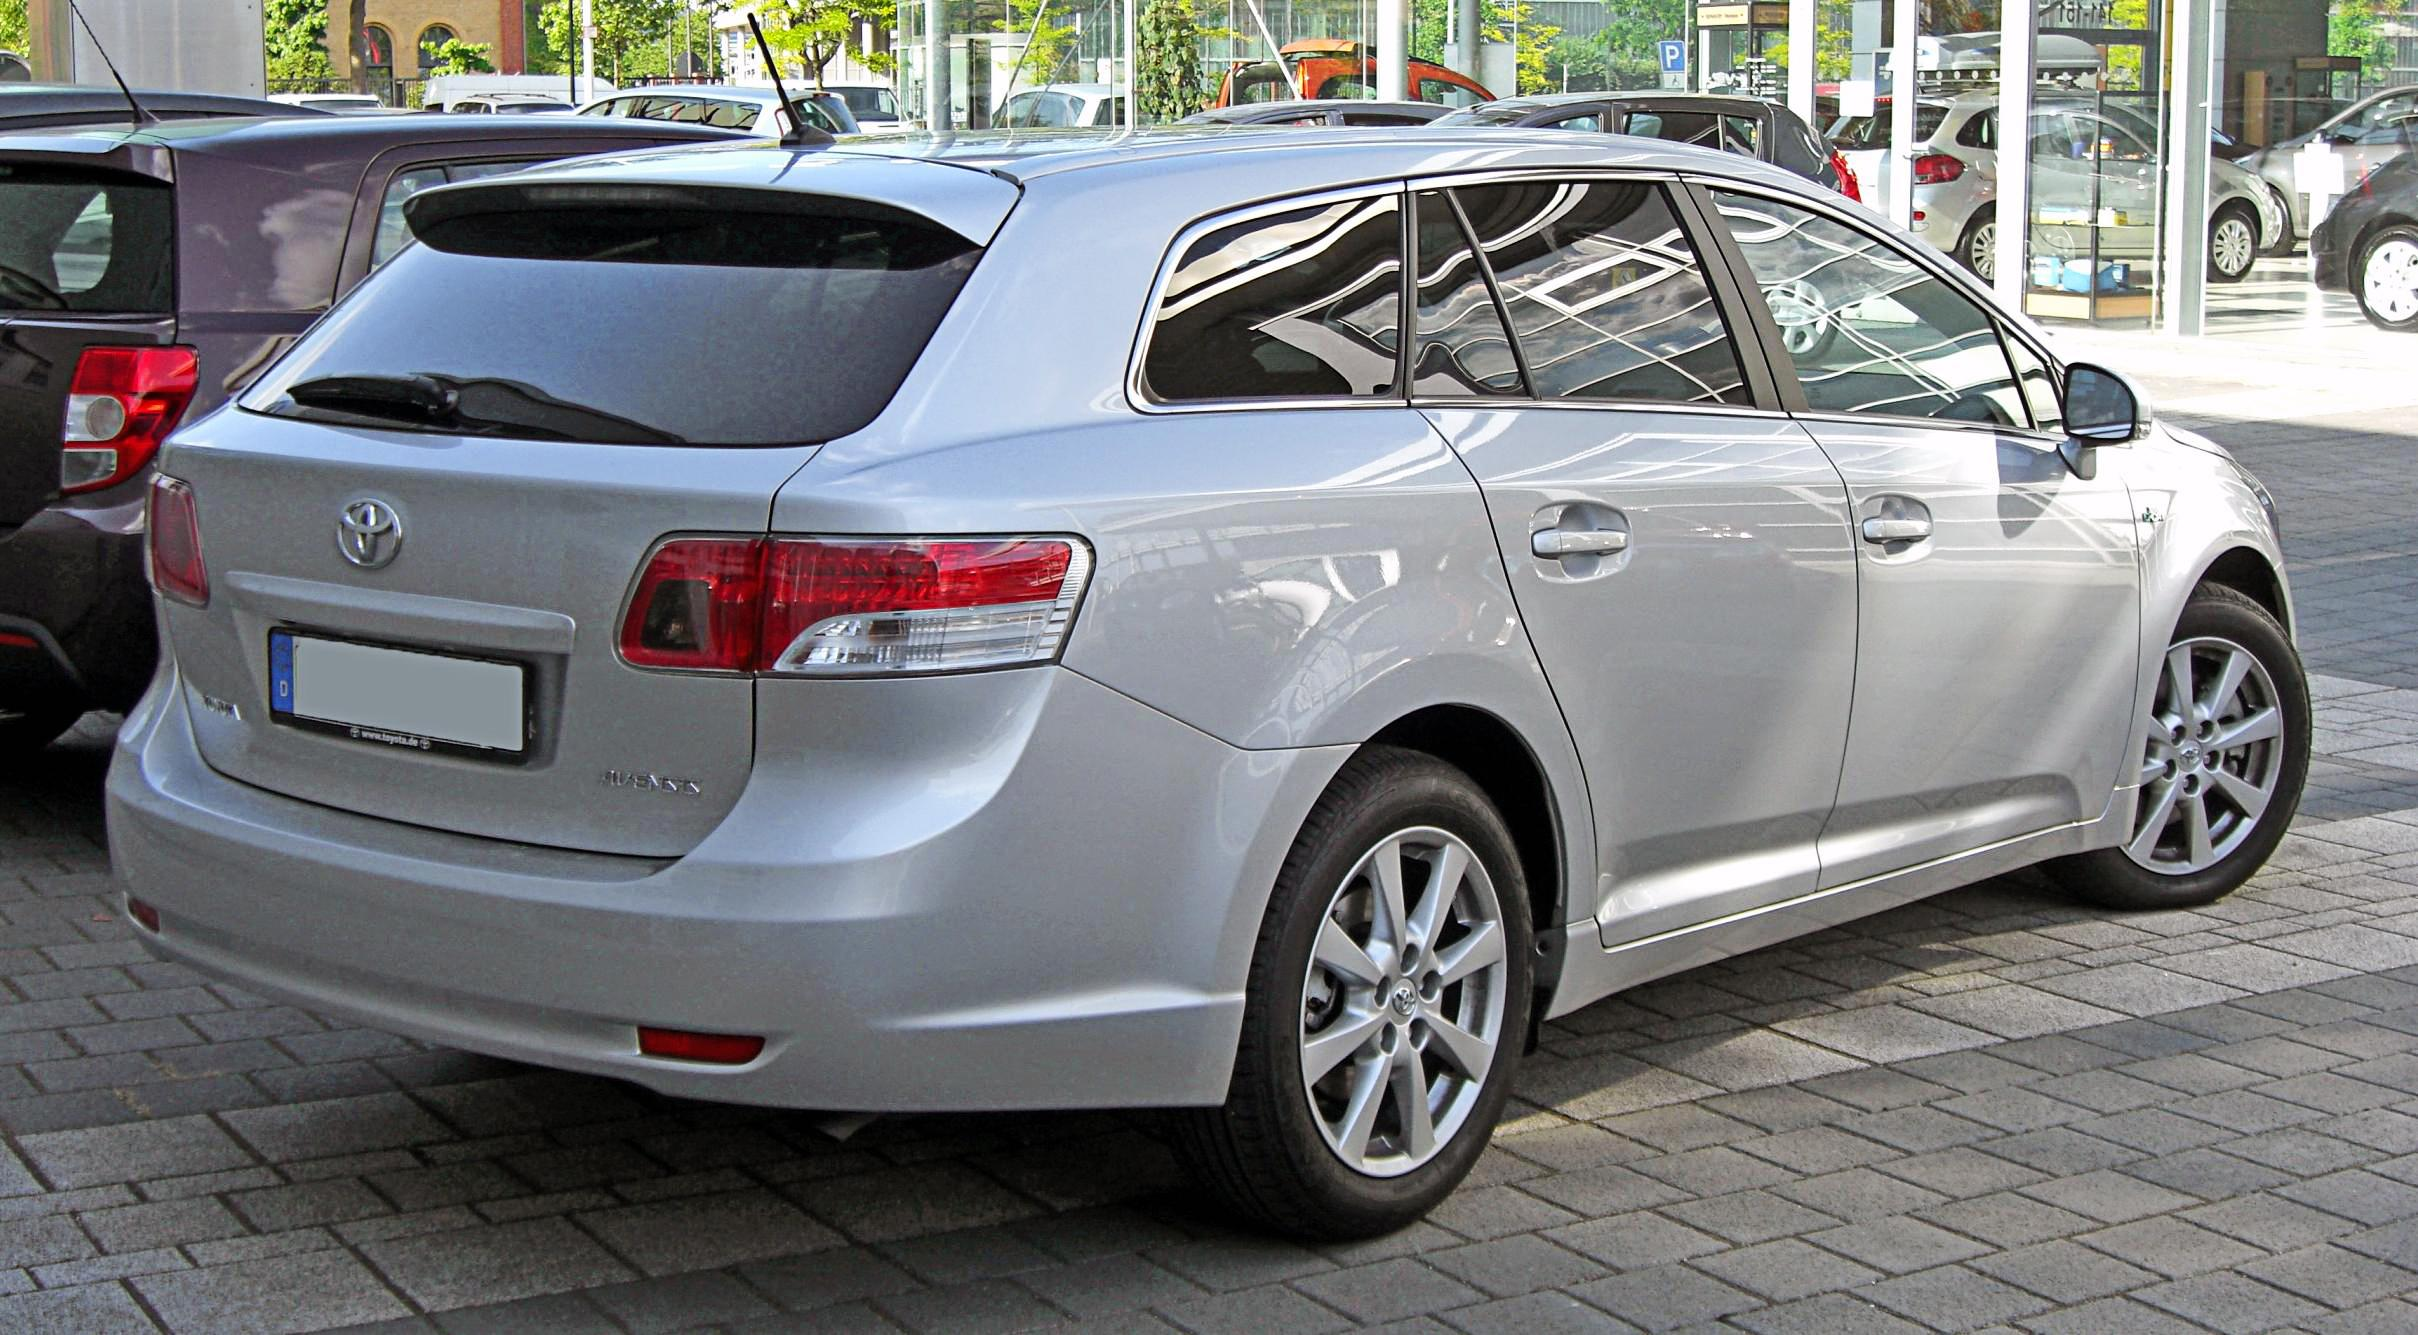 fichier toyota avensis iii combi 20090531 rear jpg wikip dia. Black Bedroom Furniture Sets. Home Design Ideas